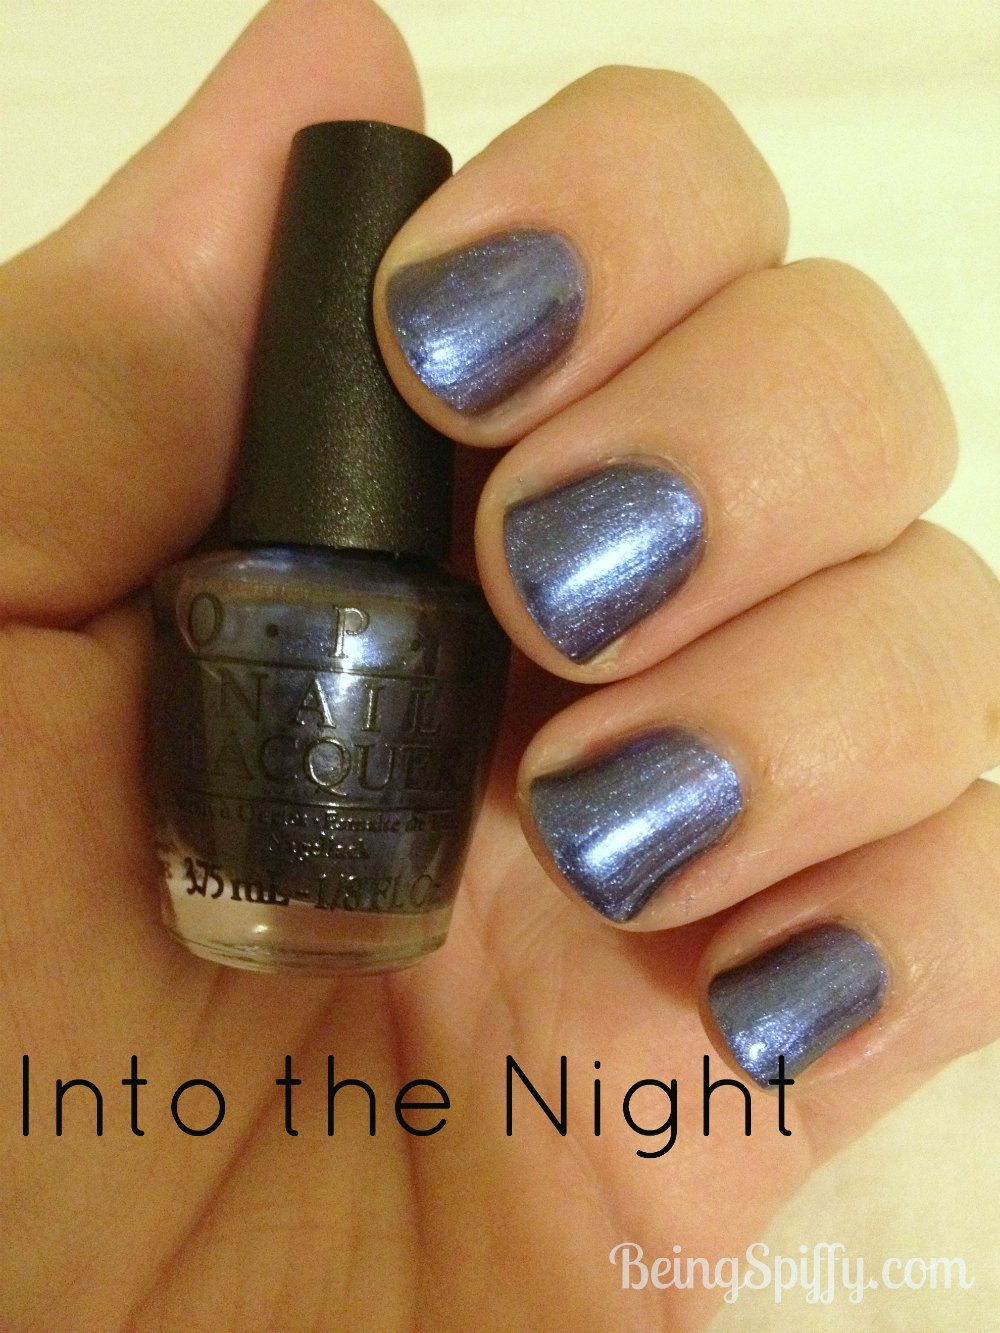 OPI_into_the_night.jpg